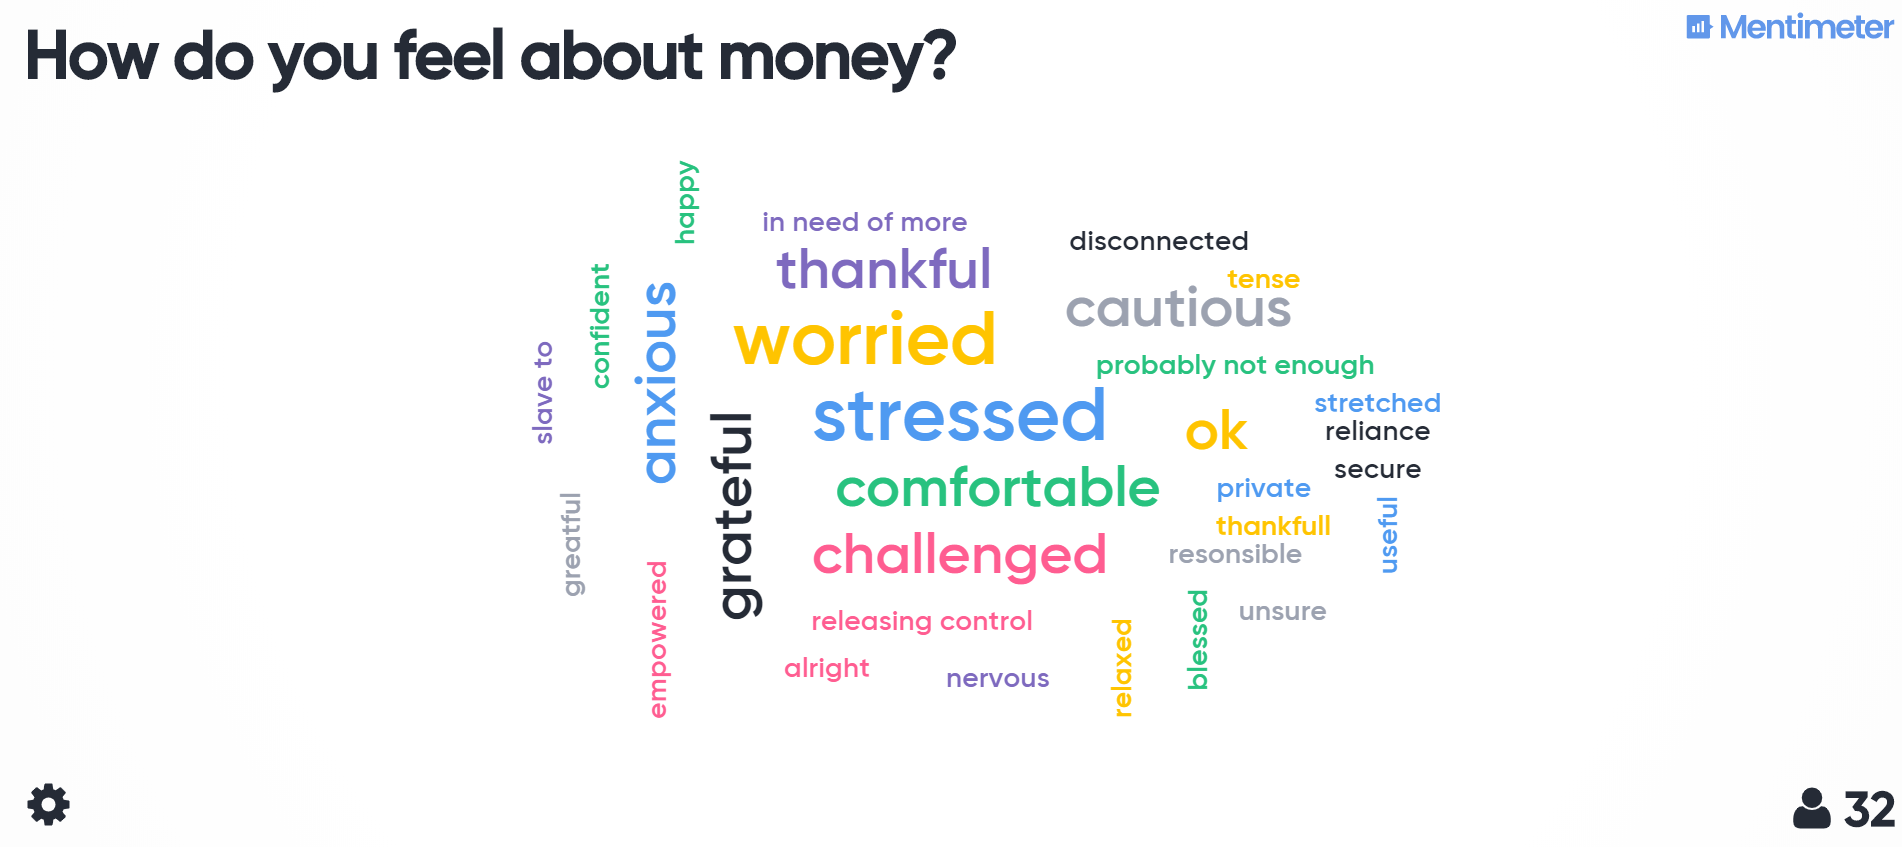 2019-09-15 - How feel about money.png